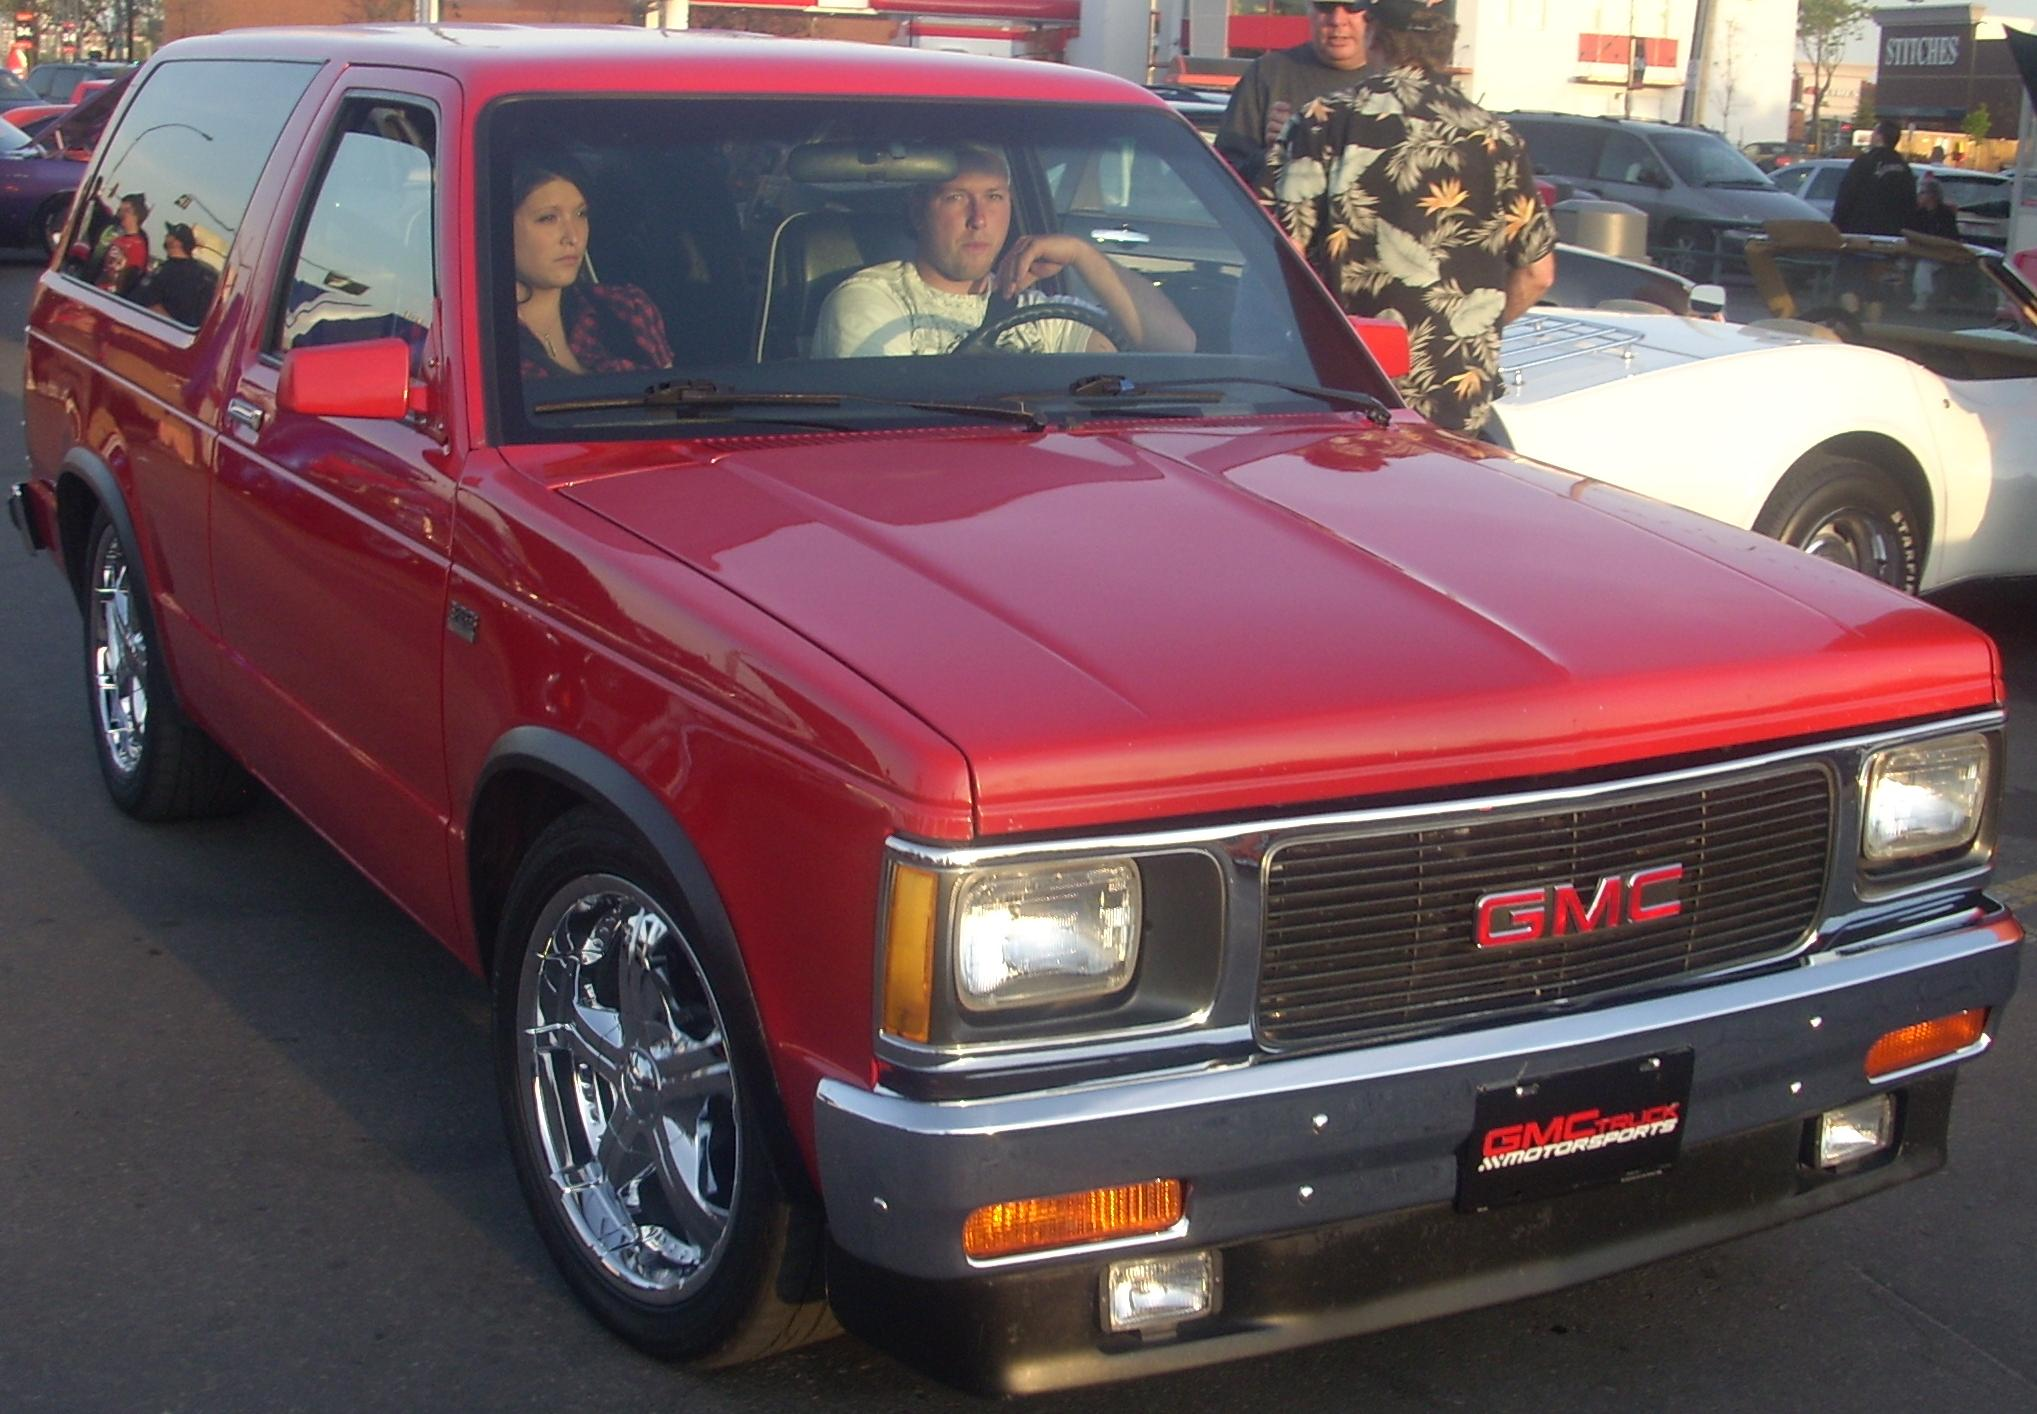 1991 GMC S-15 Jimmy #1